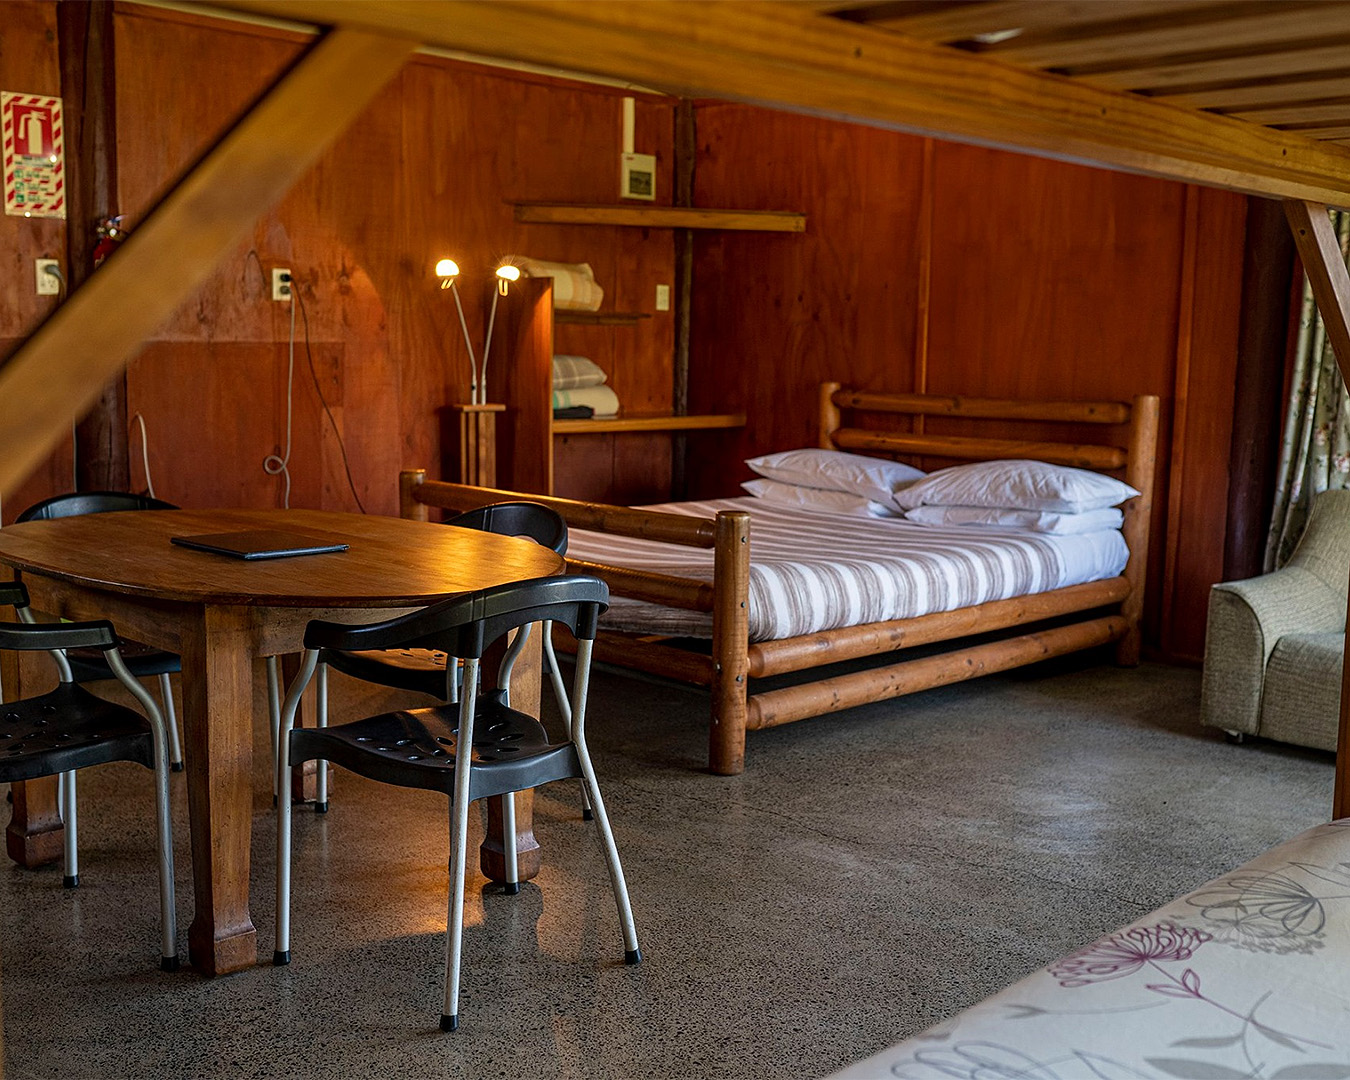 A wooden cabin at Solscape looks well appointed.